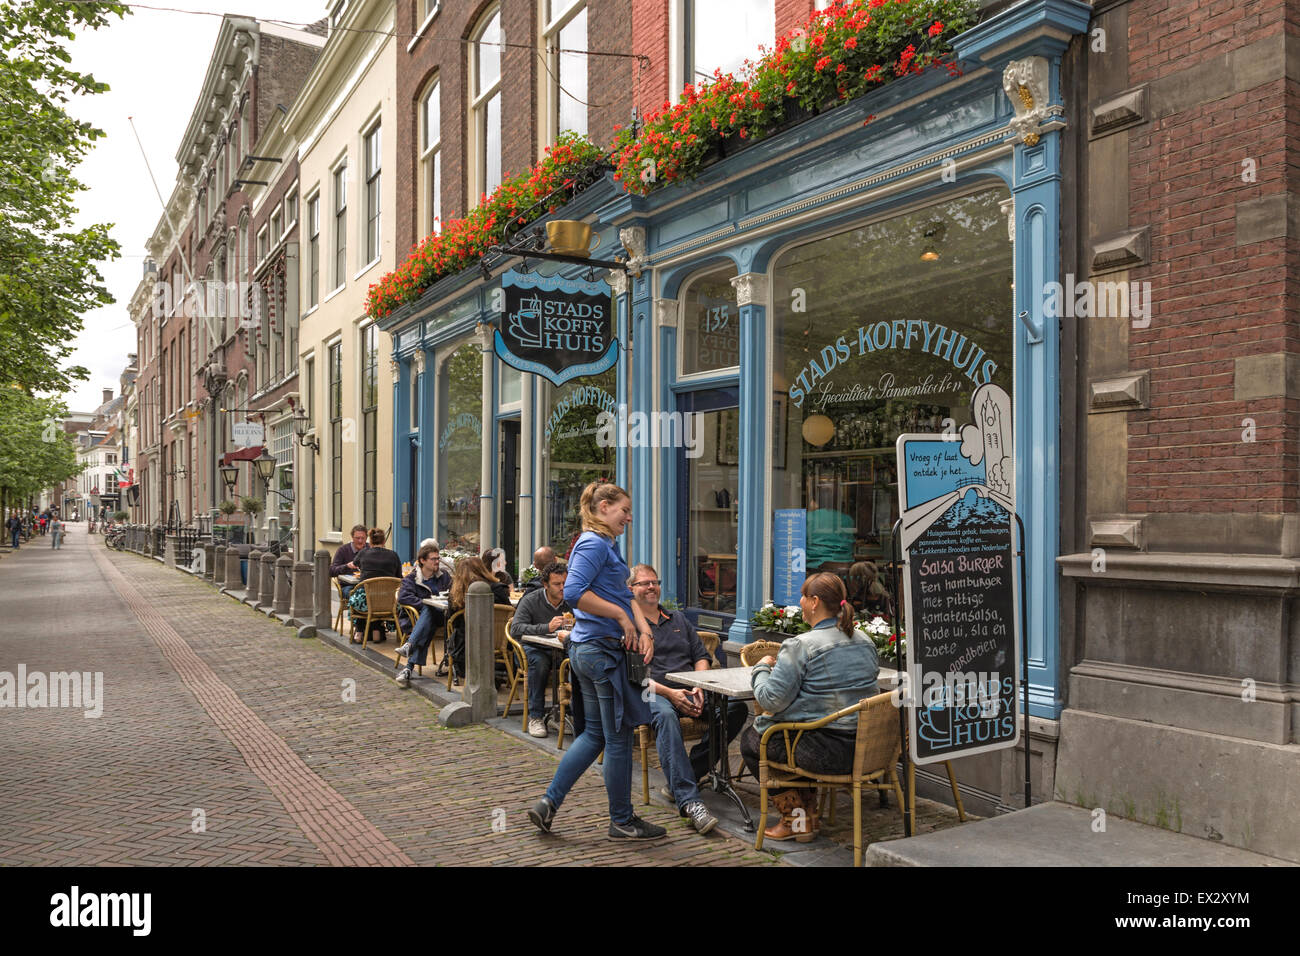 Popular cafeteria on Oude Delft in the historic city center of Delft, South Holland, The Netherlands, Europe. - Stock Image